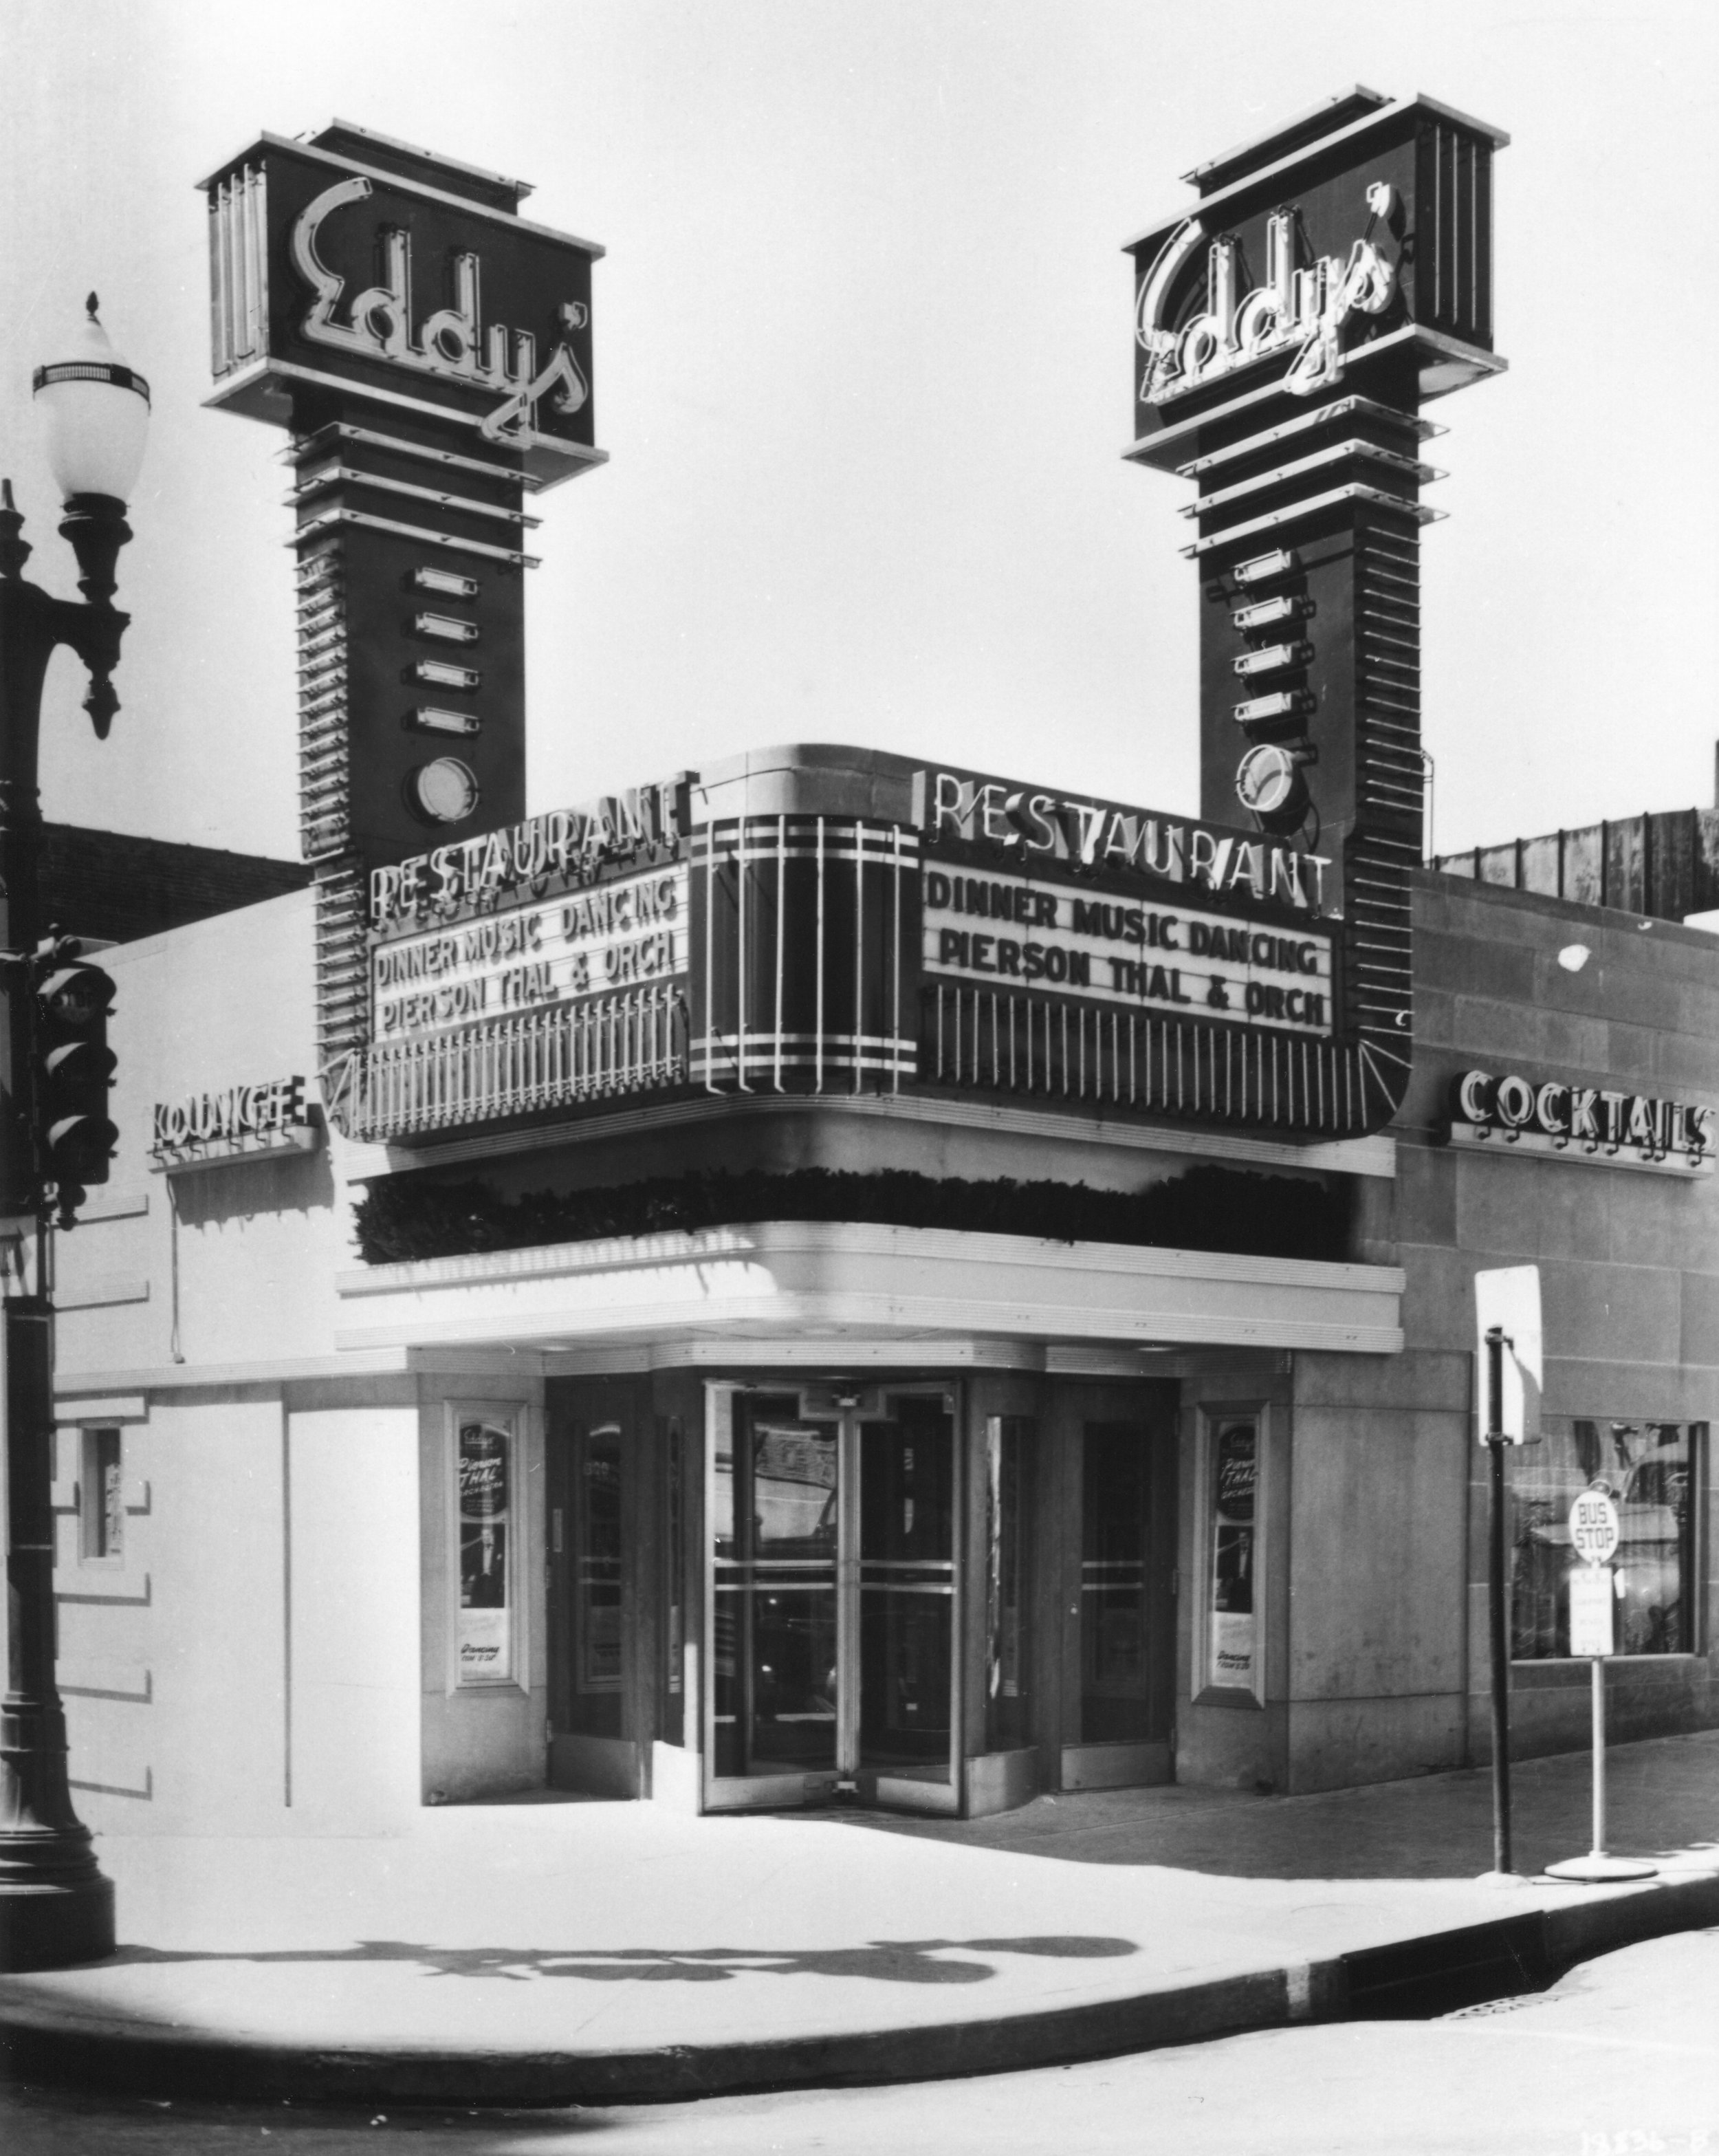 Wilborn Collection Eddy's Restraurant and Nightclub 4-21-1949 exterior view of entrance WA-124-18836-B.jpg